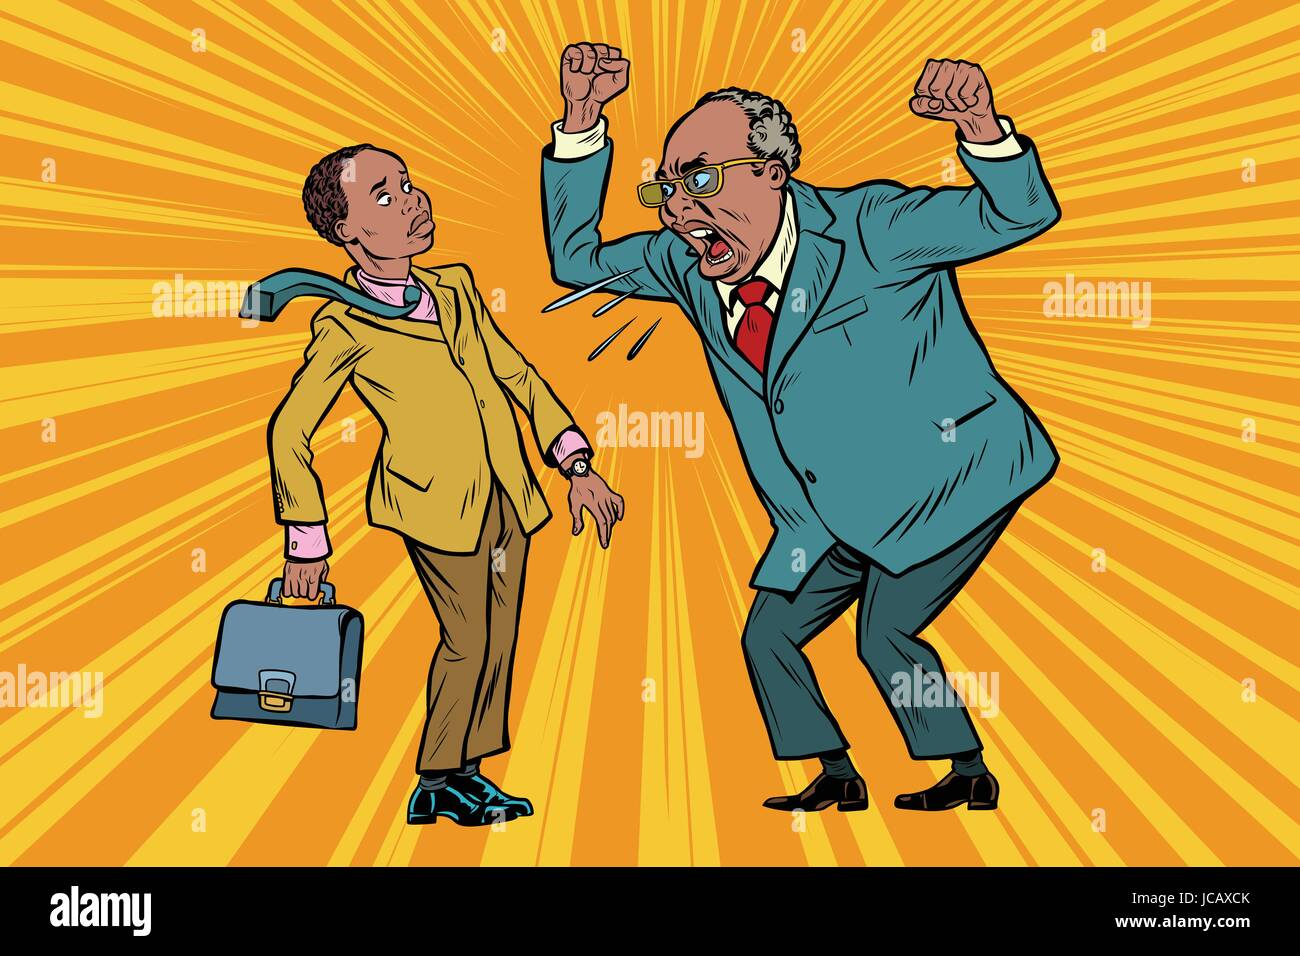 Boss scolds businessman. African American people. Conflicts at work. Pop art retro vector illustration - Stock Vector